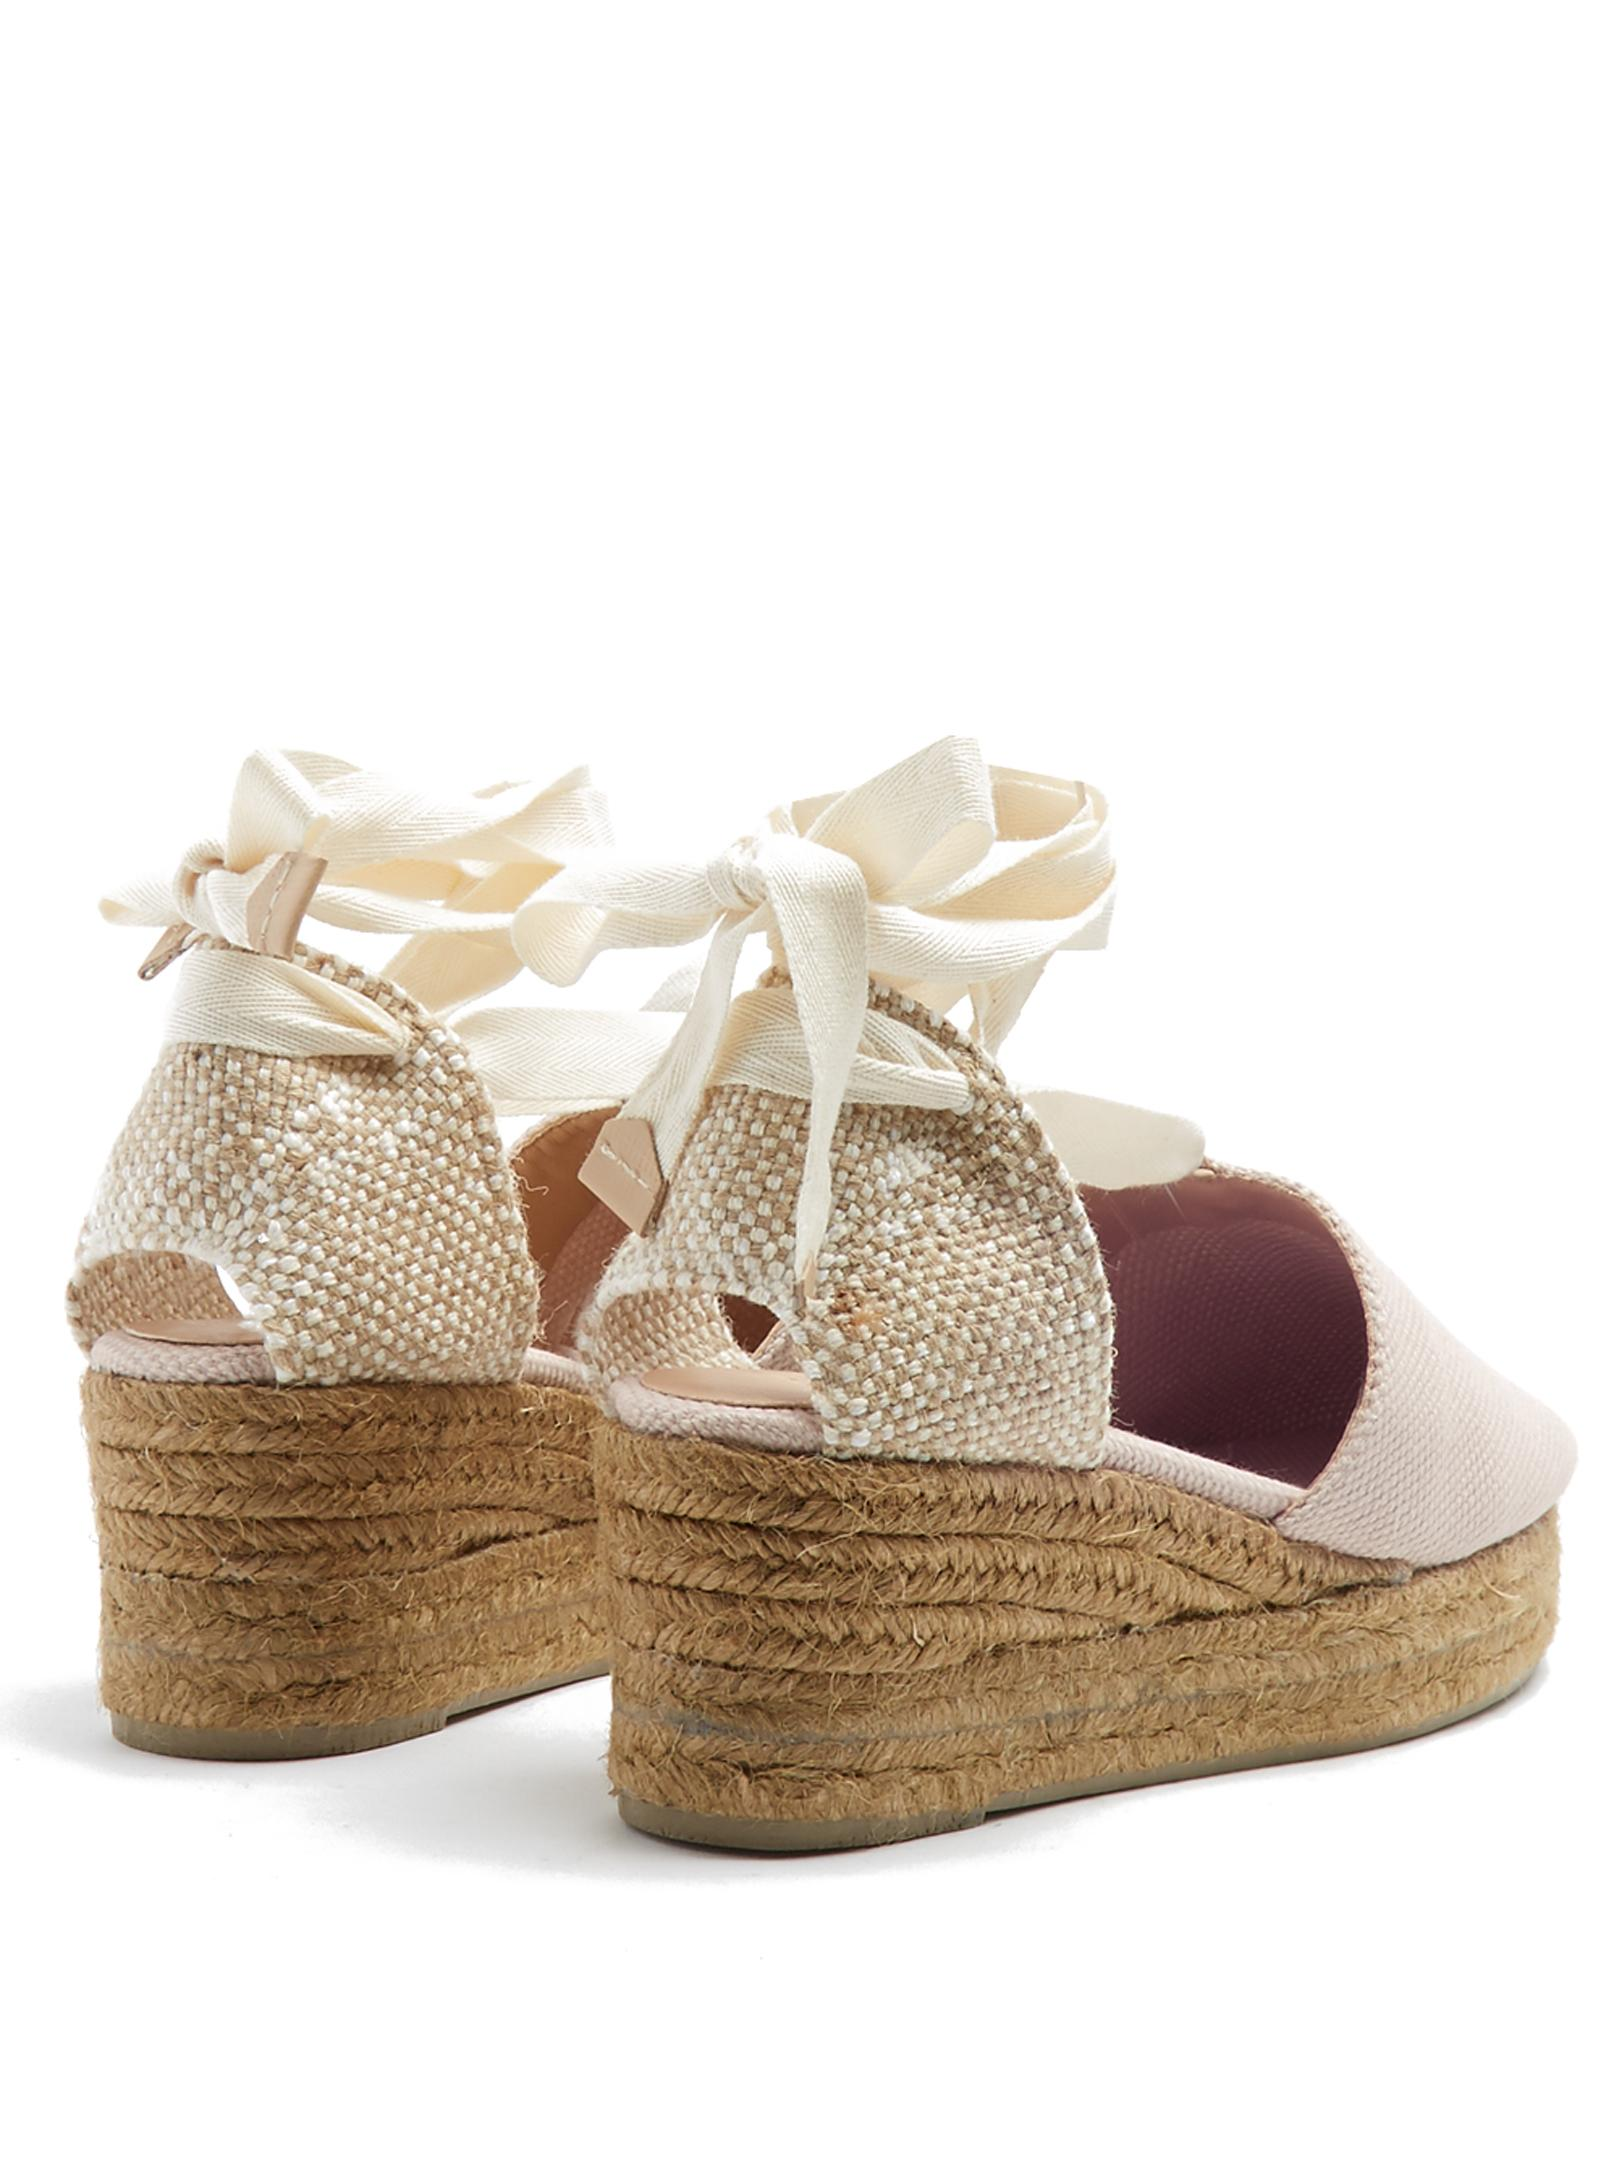 47d05fc62e Castaner Campina Canvas Wedge Espadrilles in Pink - Lyst